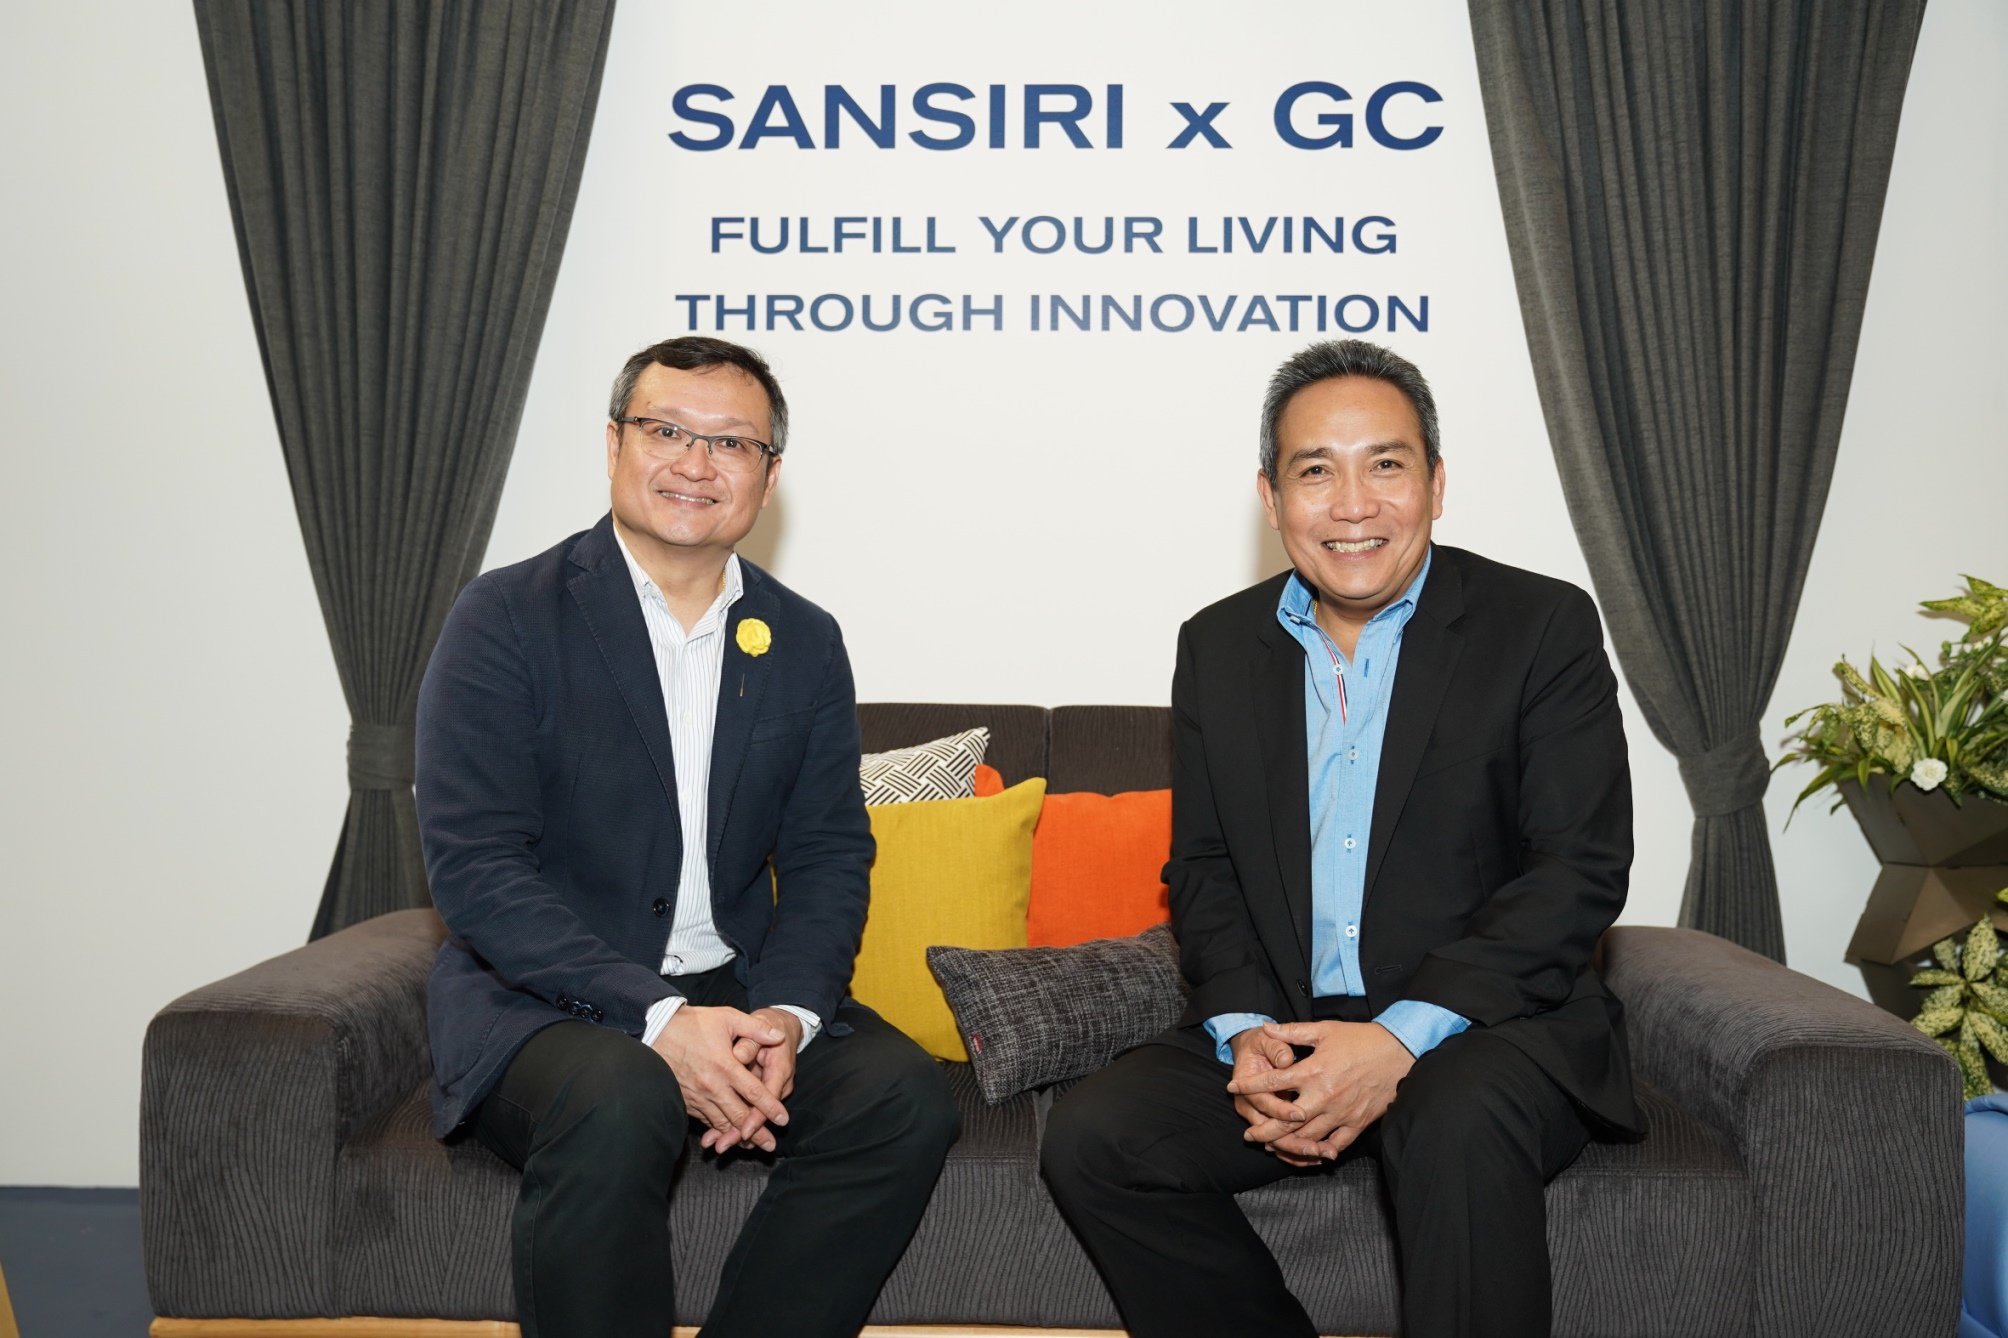 SANSIRI x GC TO BUILD THAILAND'S FIRST 'GREEN SOCIETY' BOLSTERING ITS LEADERSHIP IN CIRCULAR LIVING